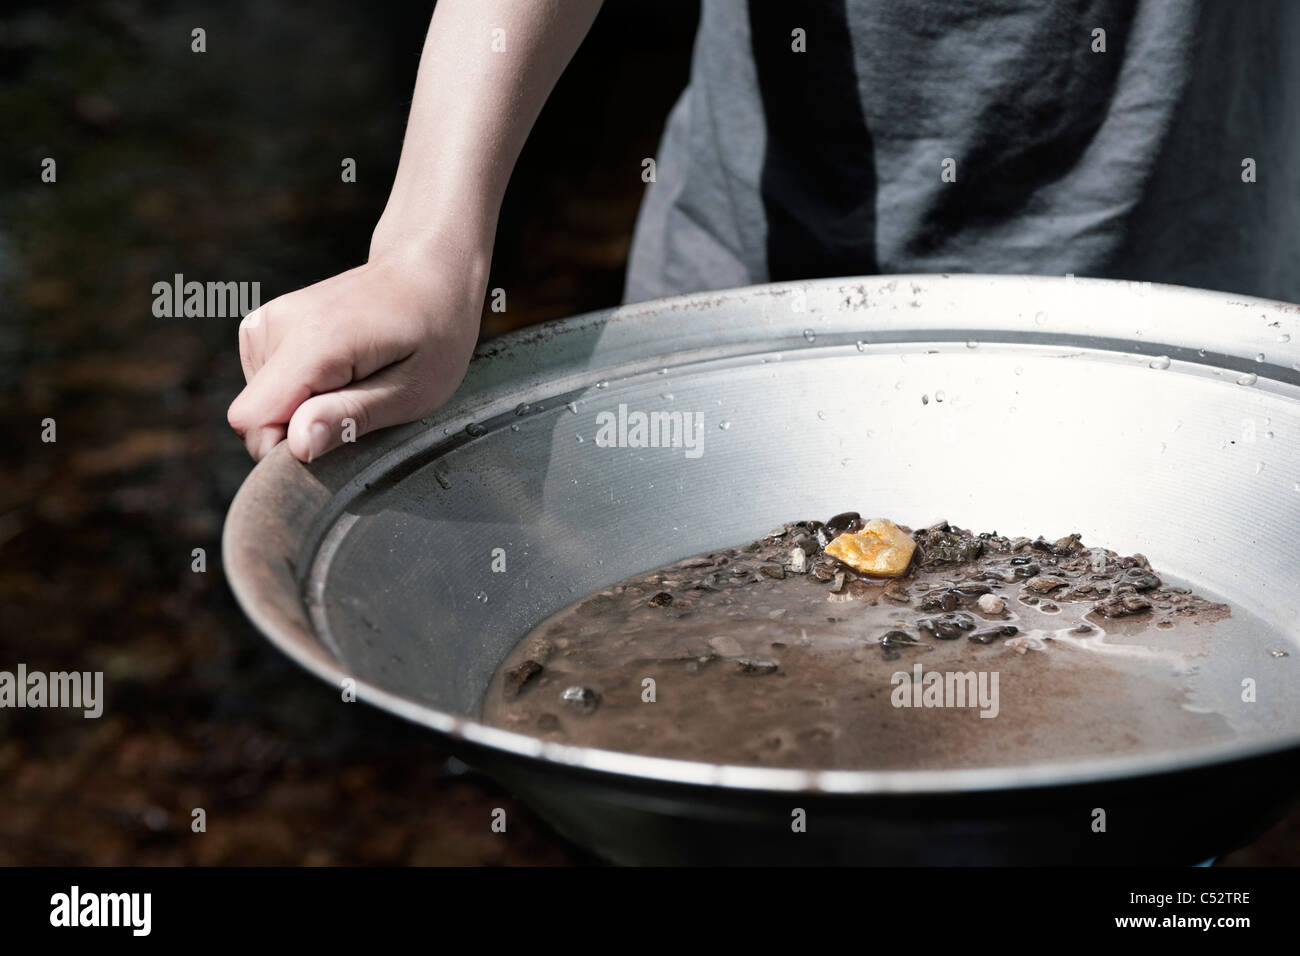 person panning for gold - Stock Image